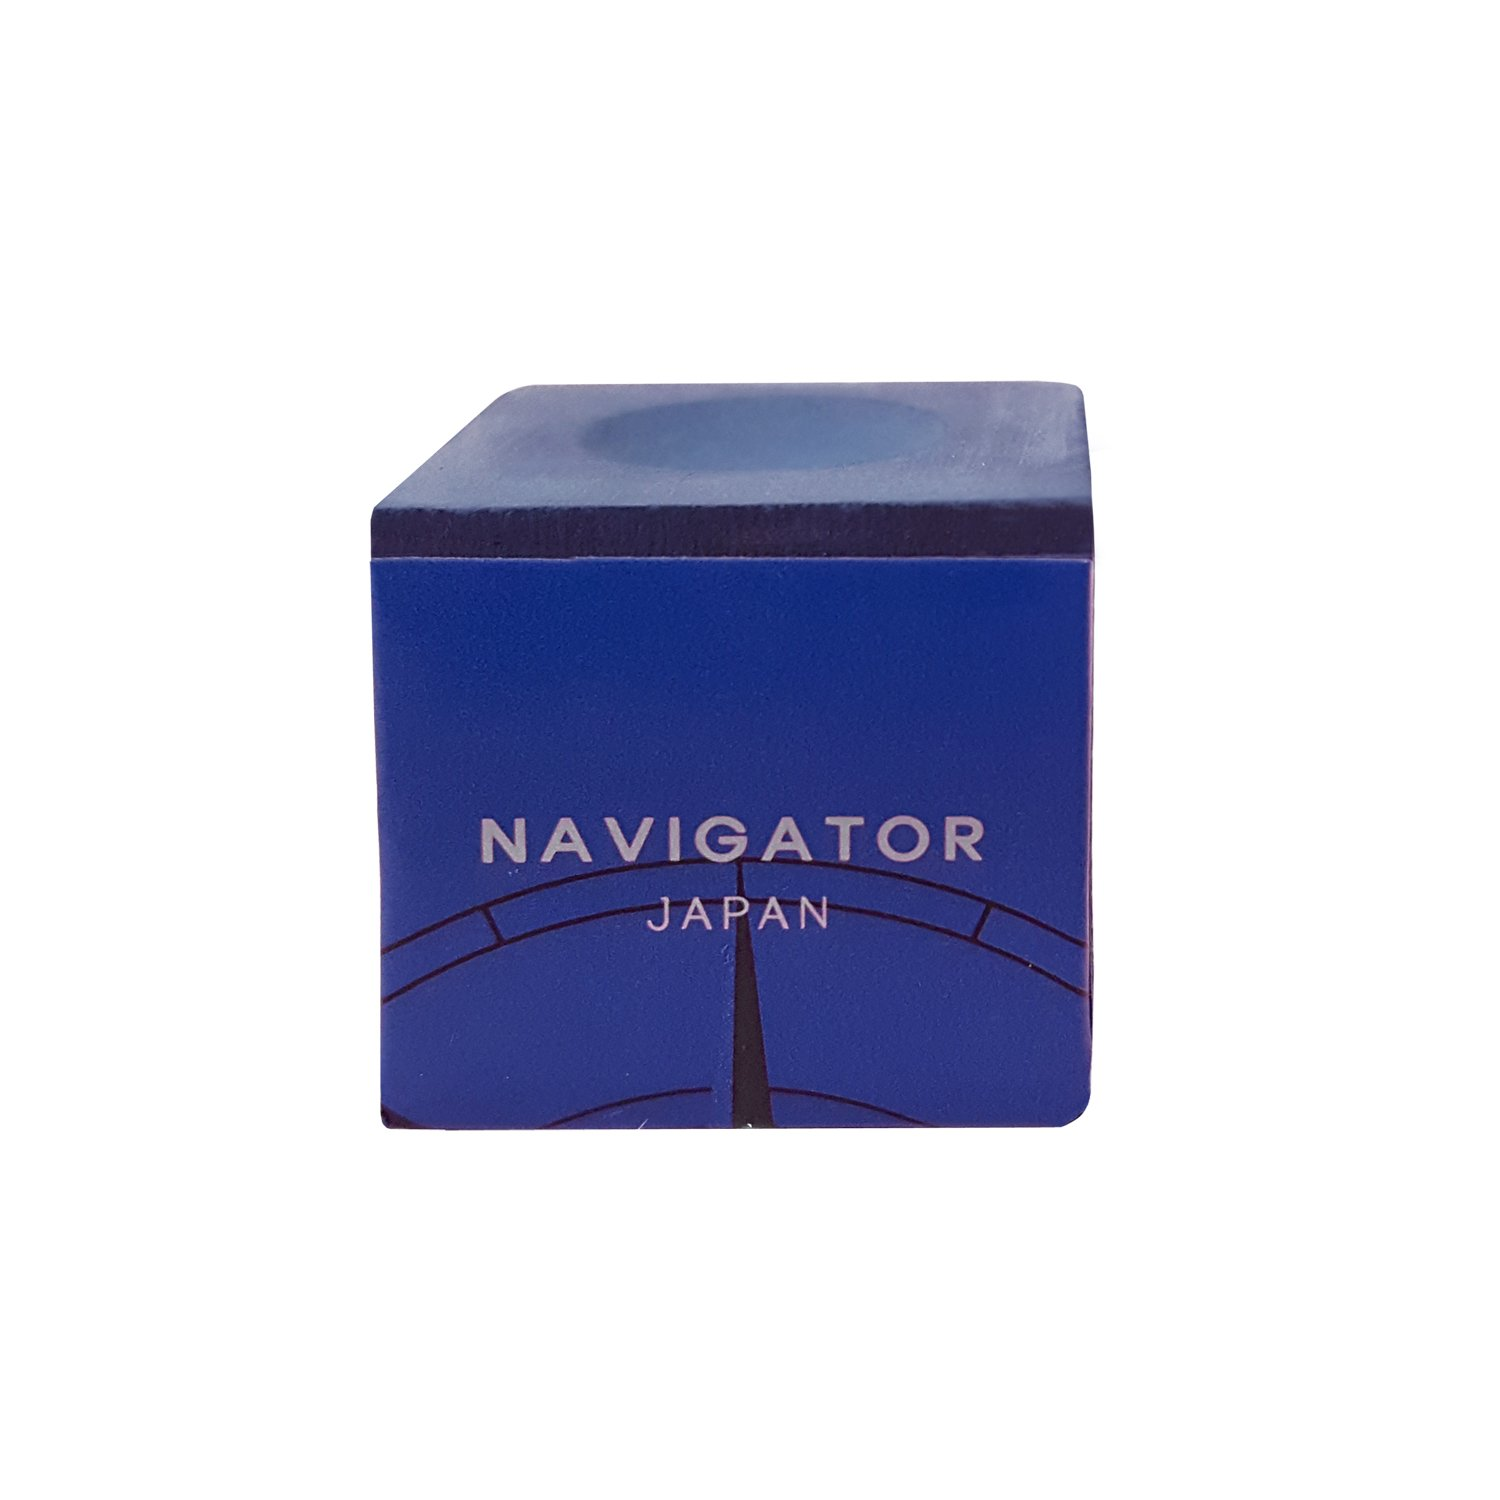 NAVIGATOR Premium Billiard Chalk - 1 Piece